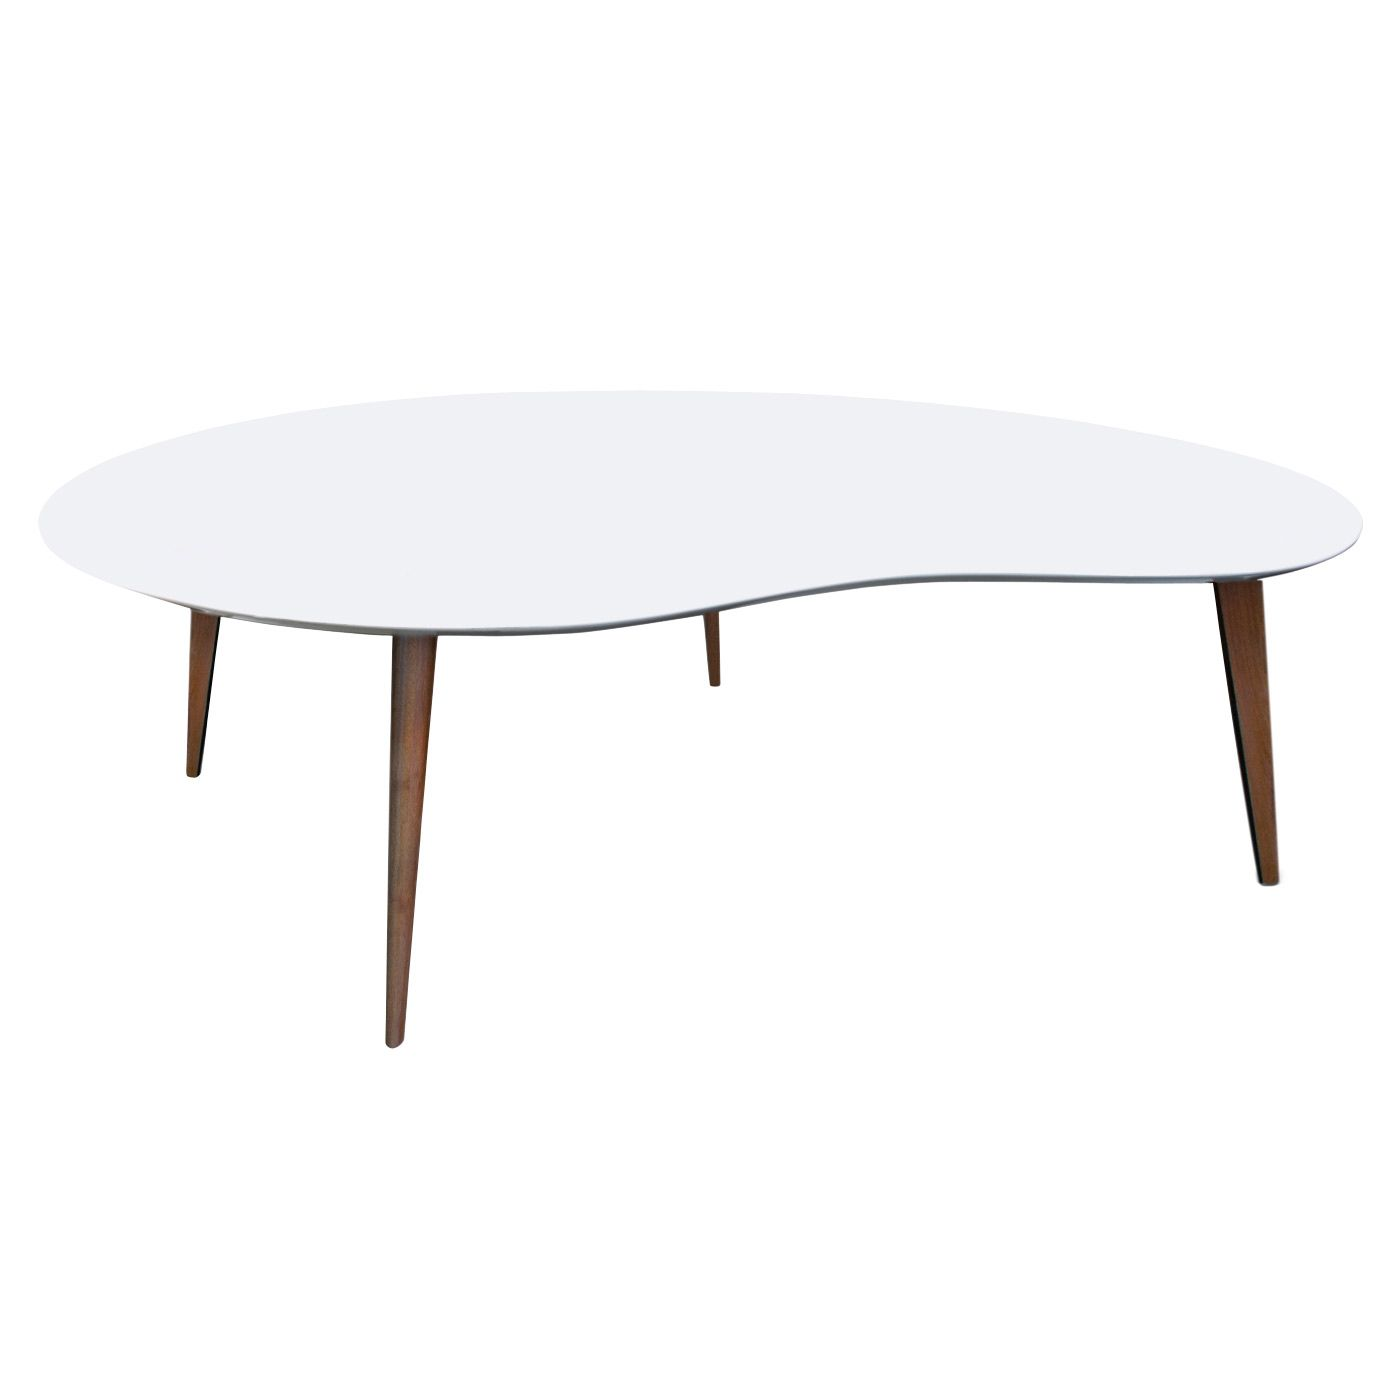 Jonathan Adler Okura White Kidney Table Zinc Door